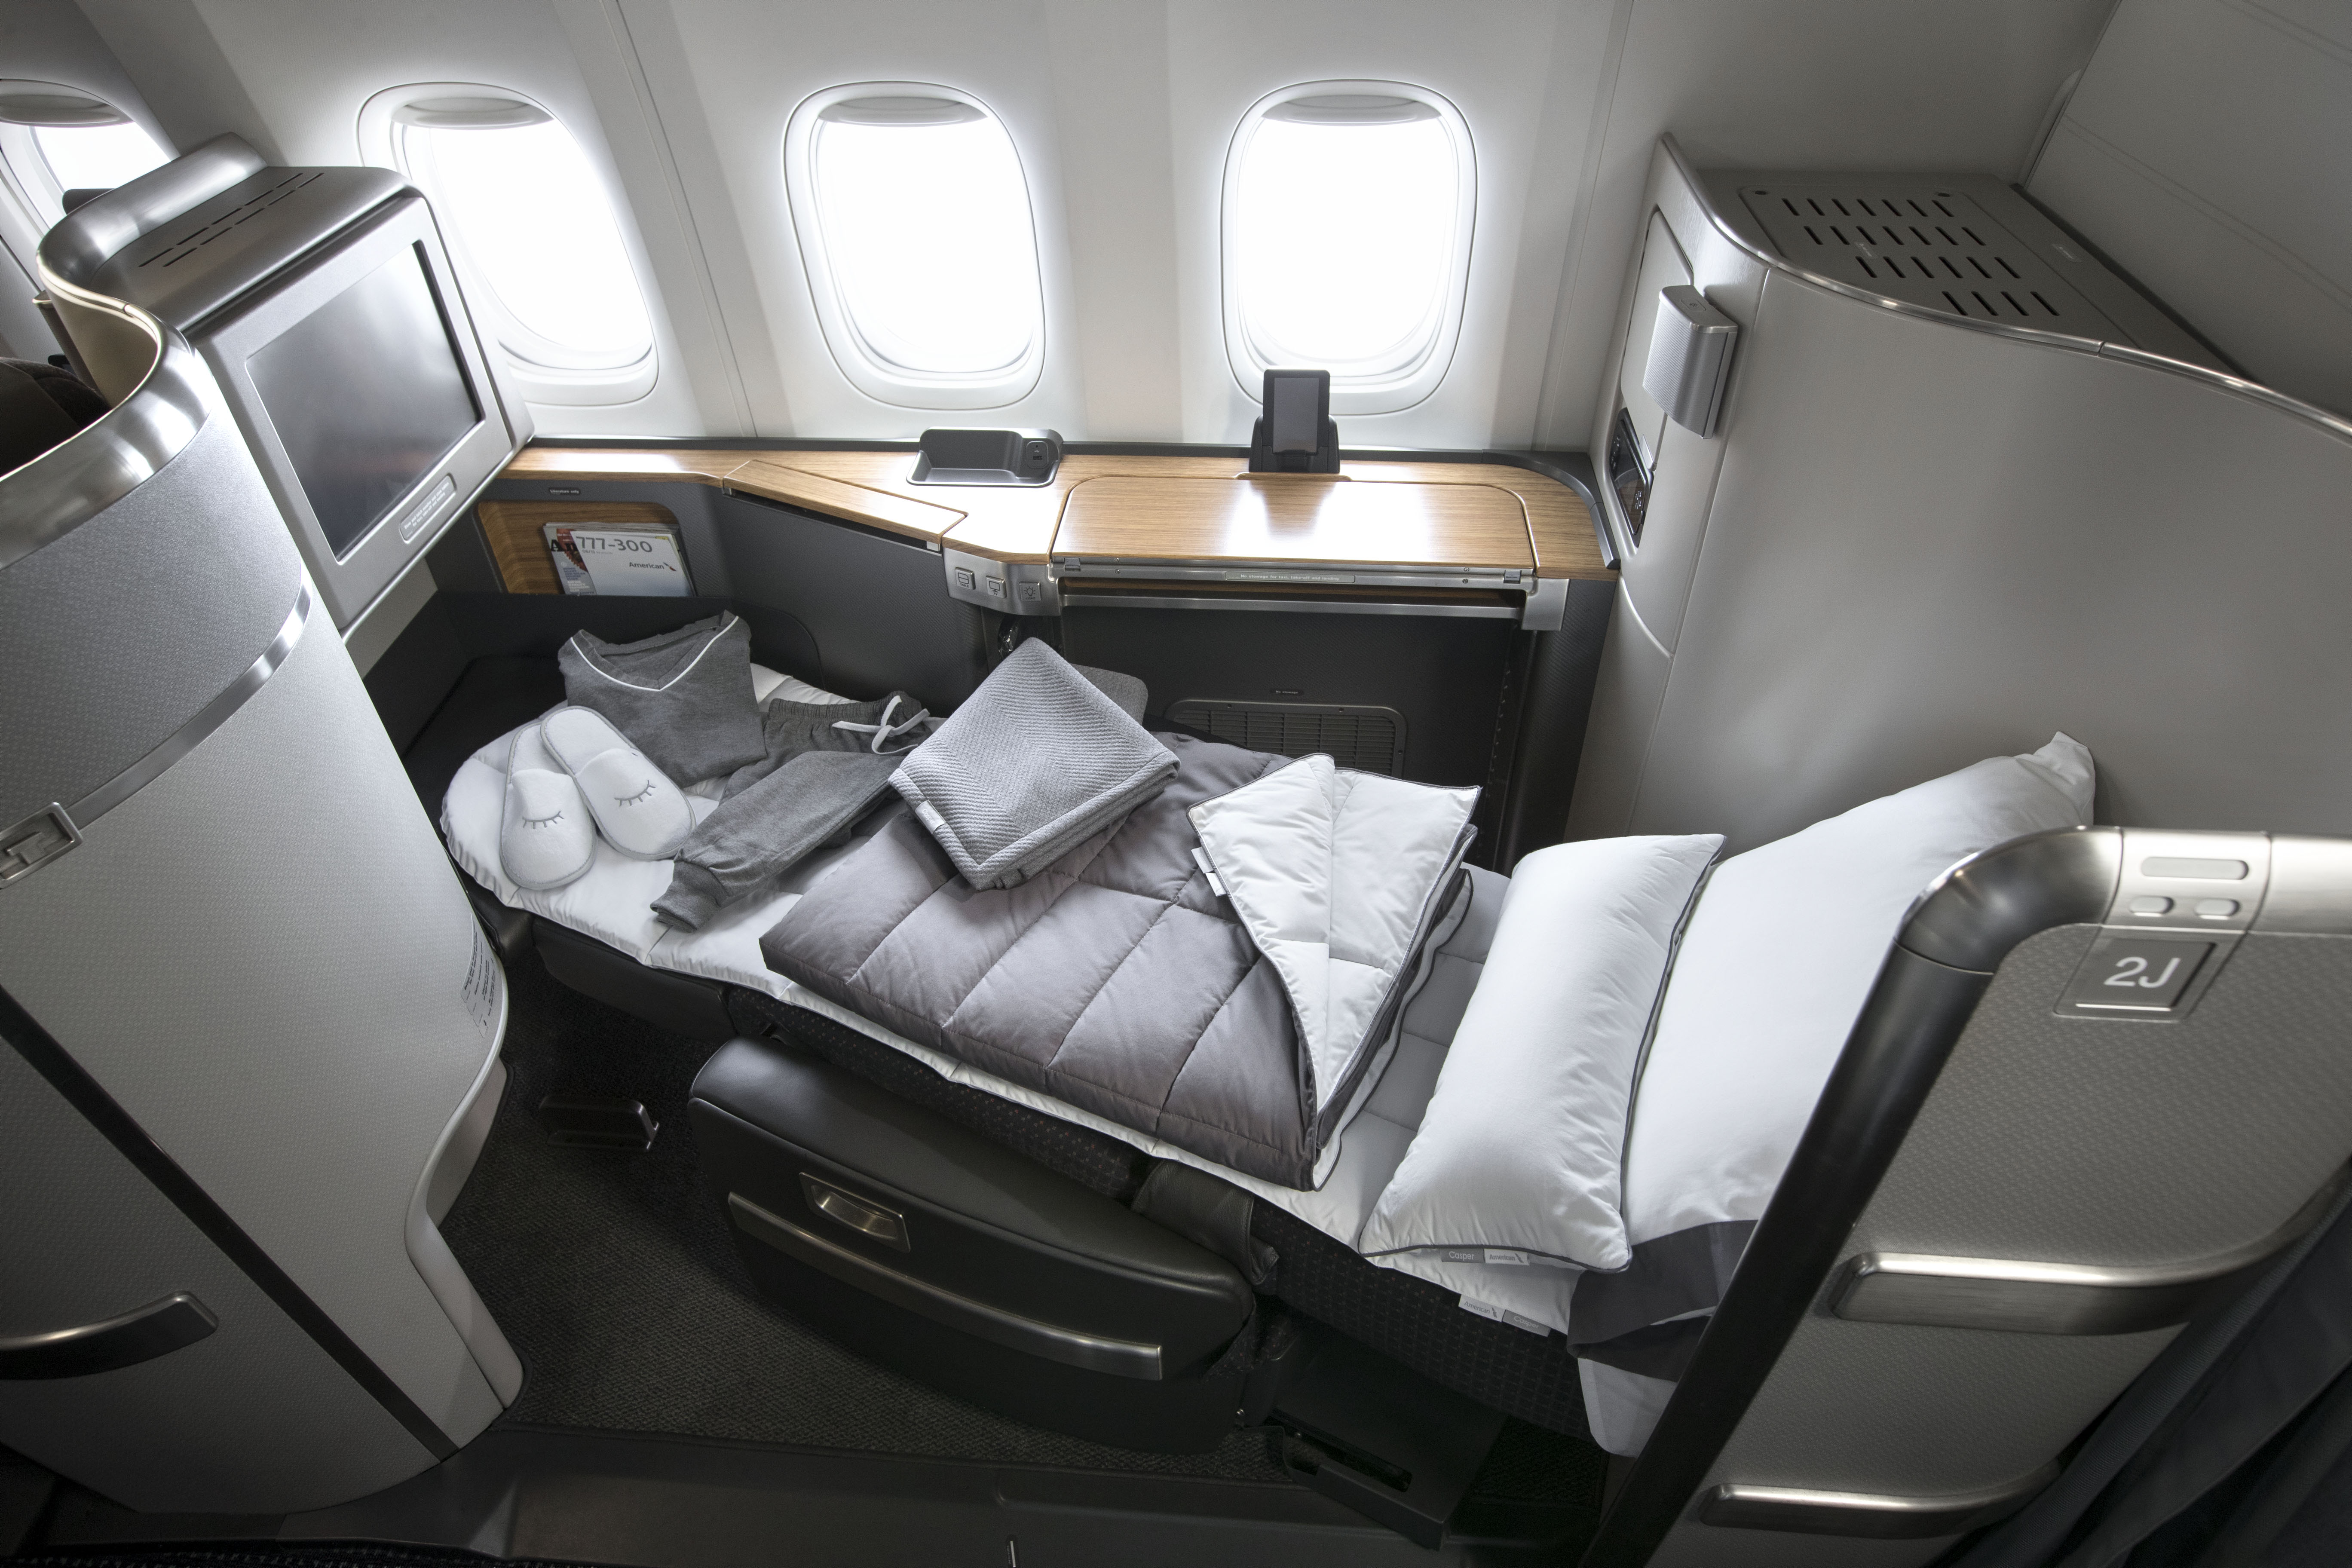 American Airlines Announces A New Suite Of Onboard Bedding